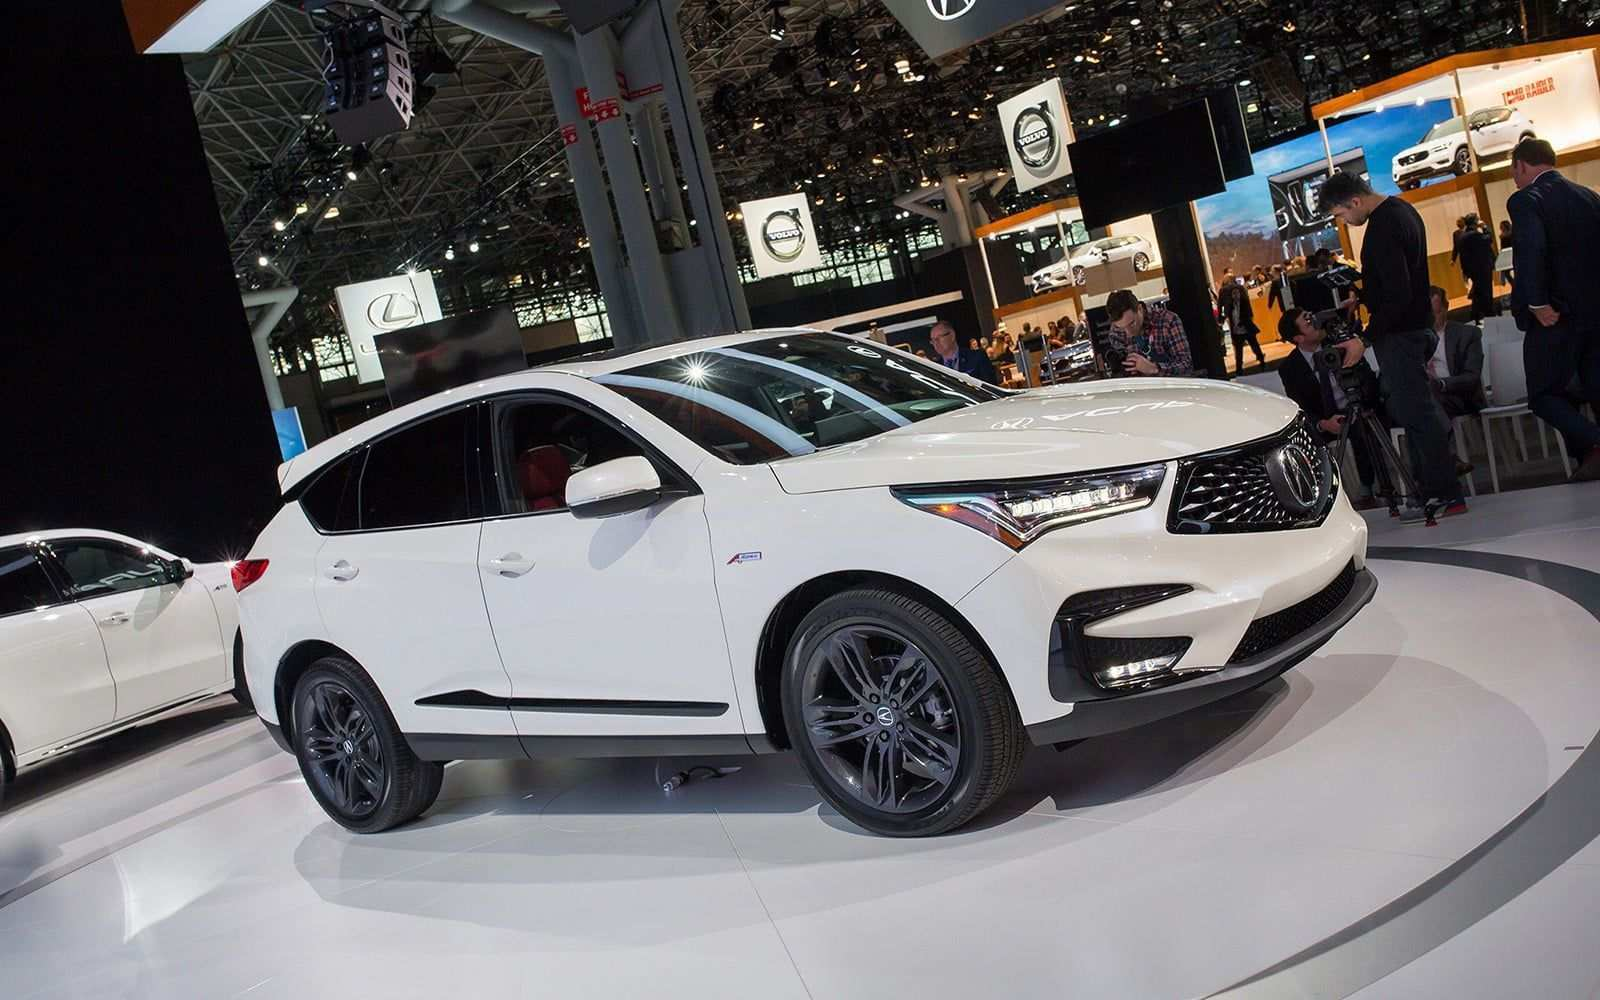 41 New The Acura New Models 2019 Interior Exterior And Review Research New by The Acura New Models 2019 Interior Exterior And Review